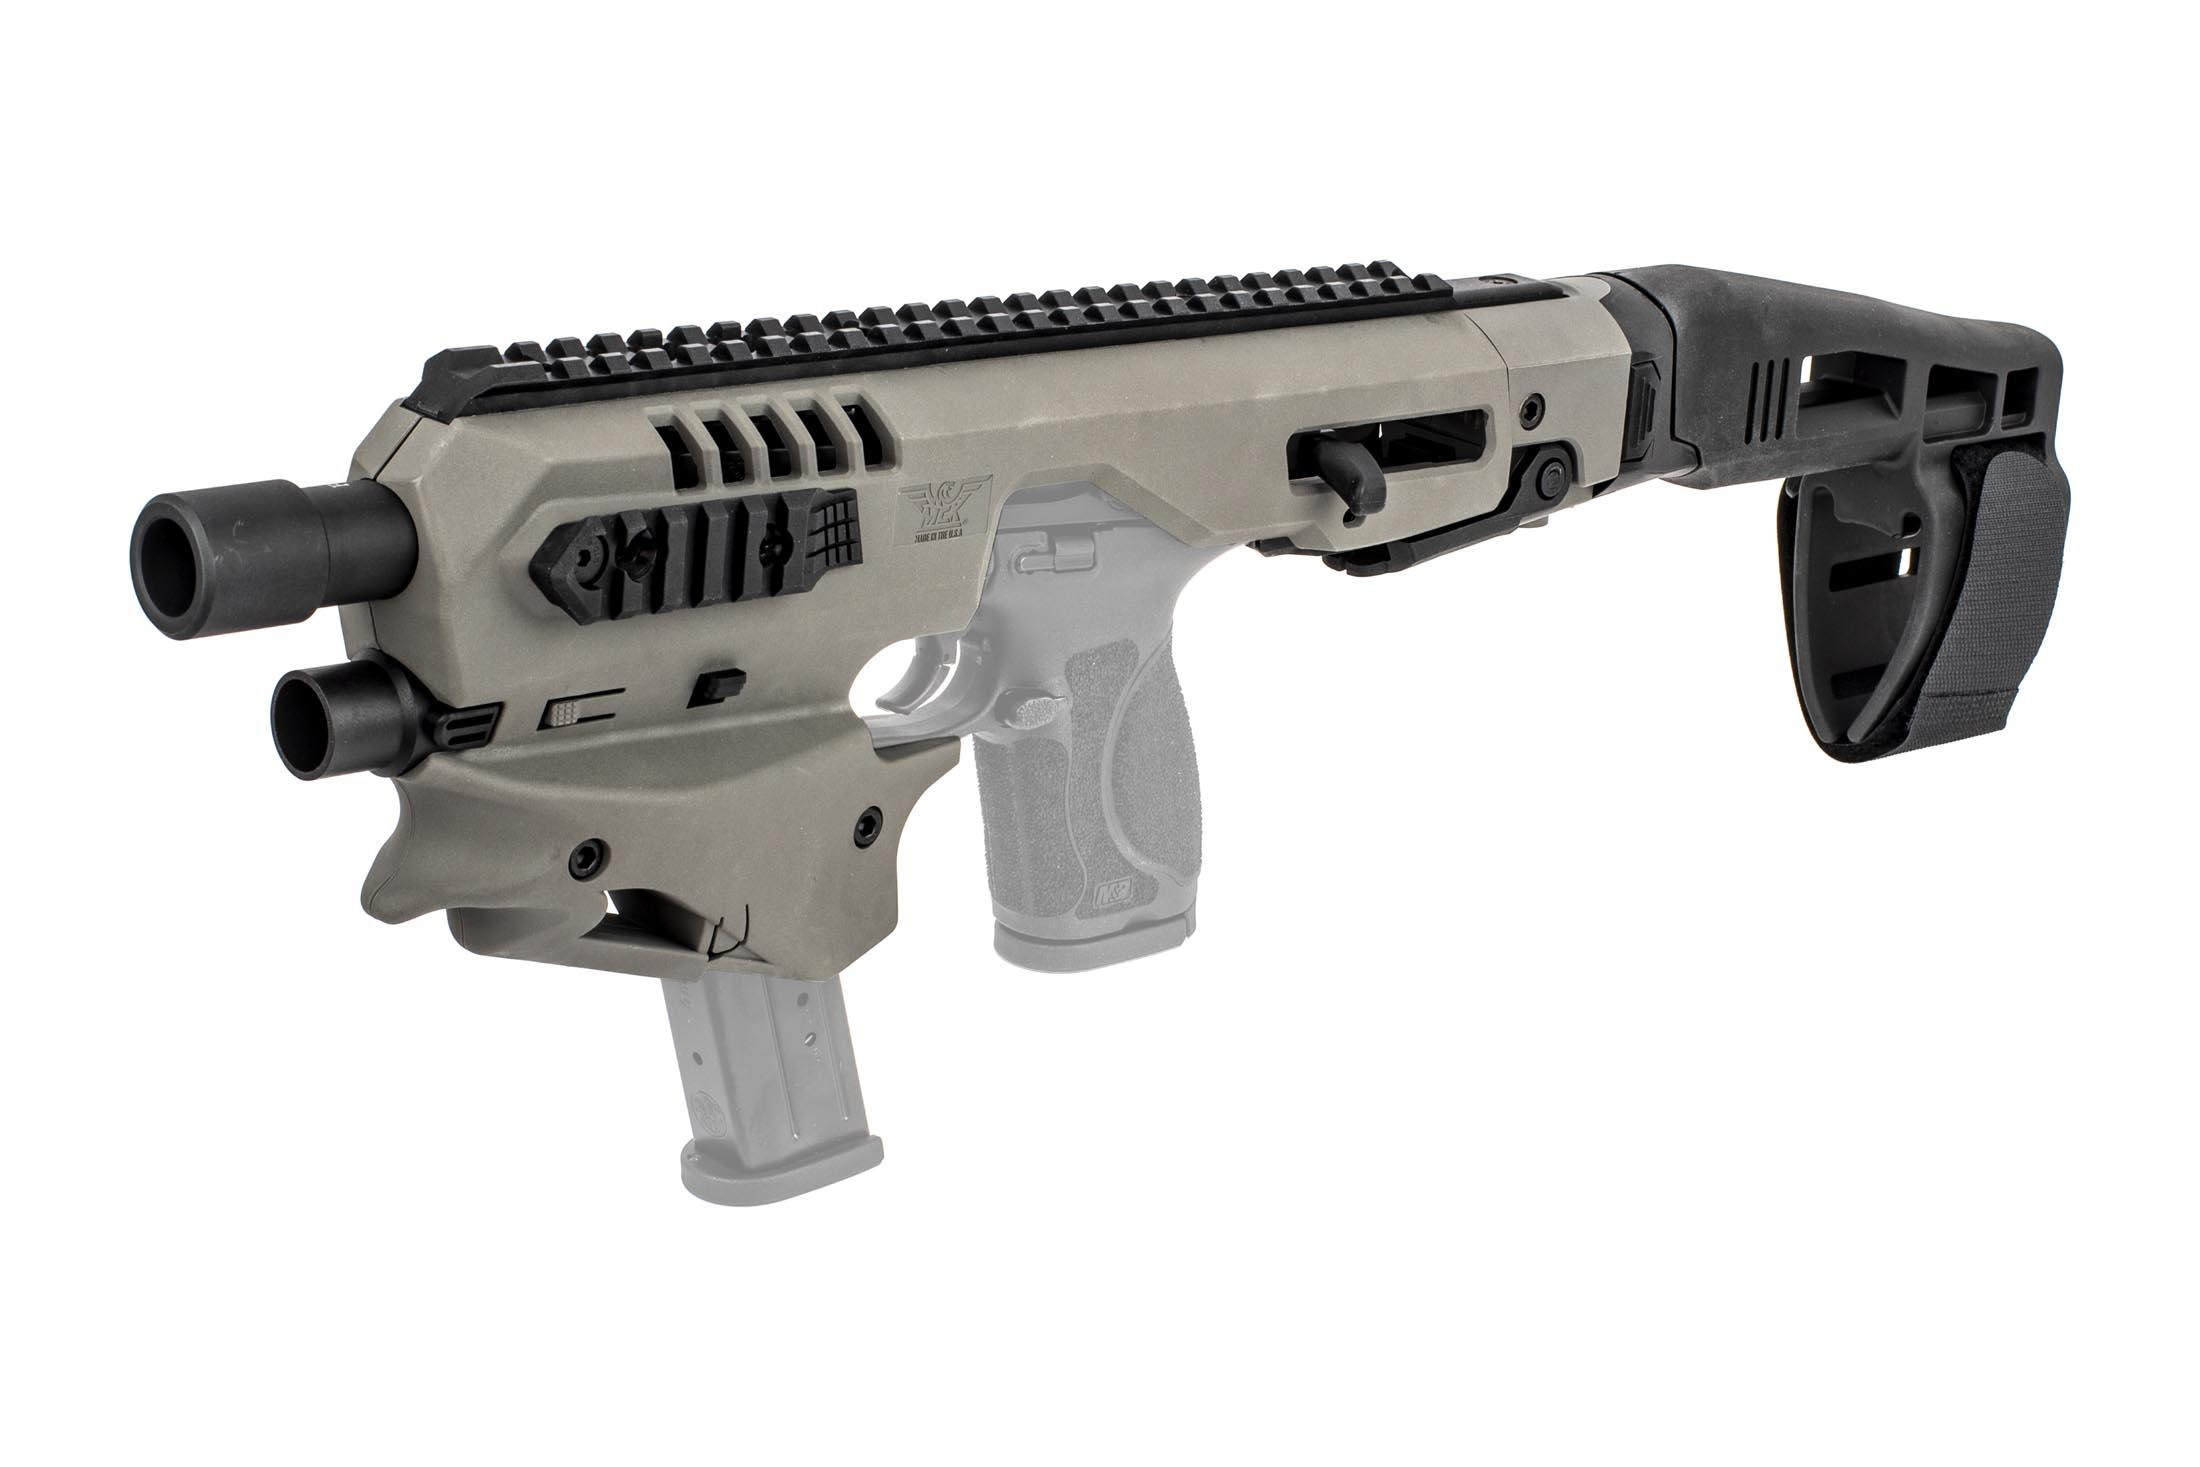 Command Arms S&W M&P-compatible conversion kit is highly ergonomic with a spare magazine holder built in, now in gray